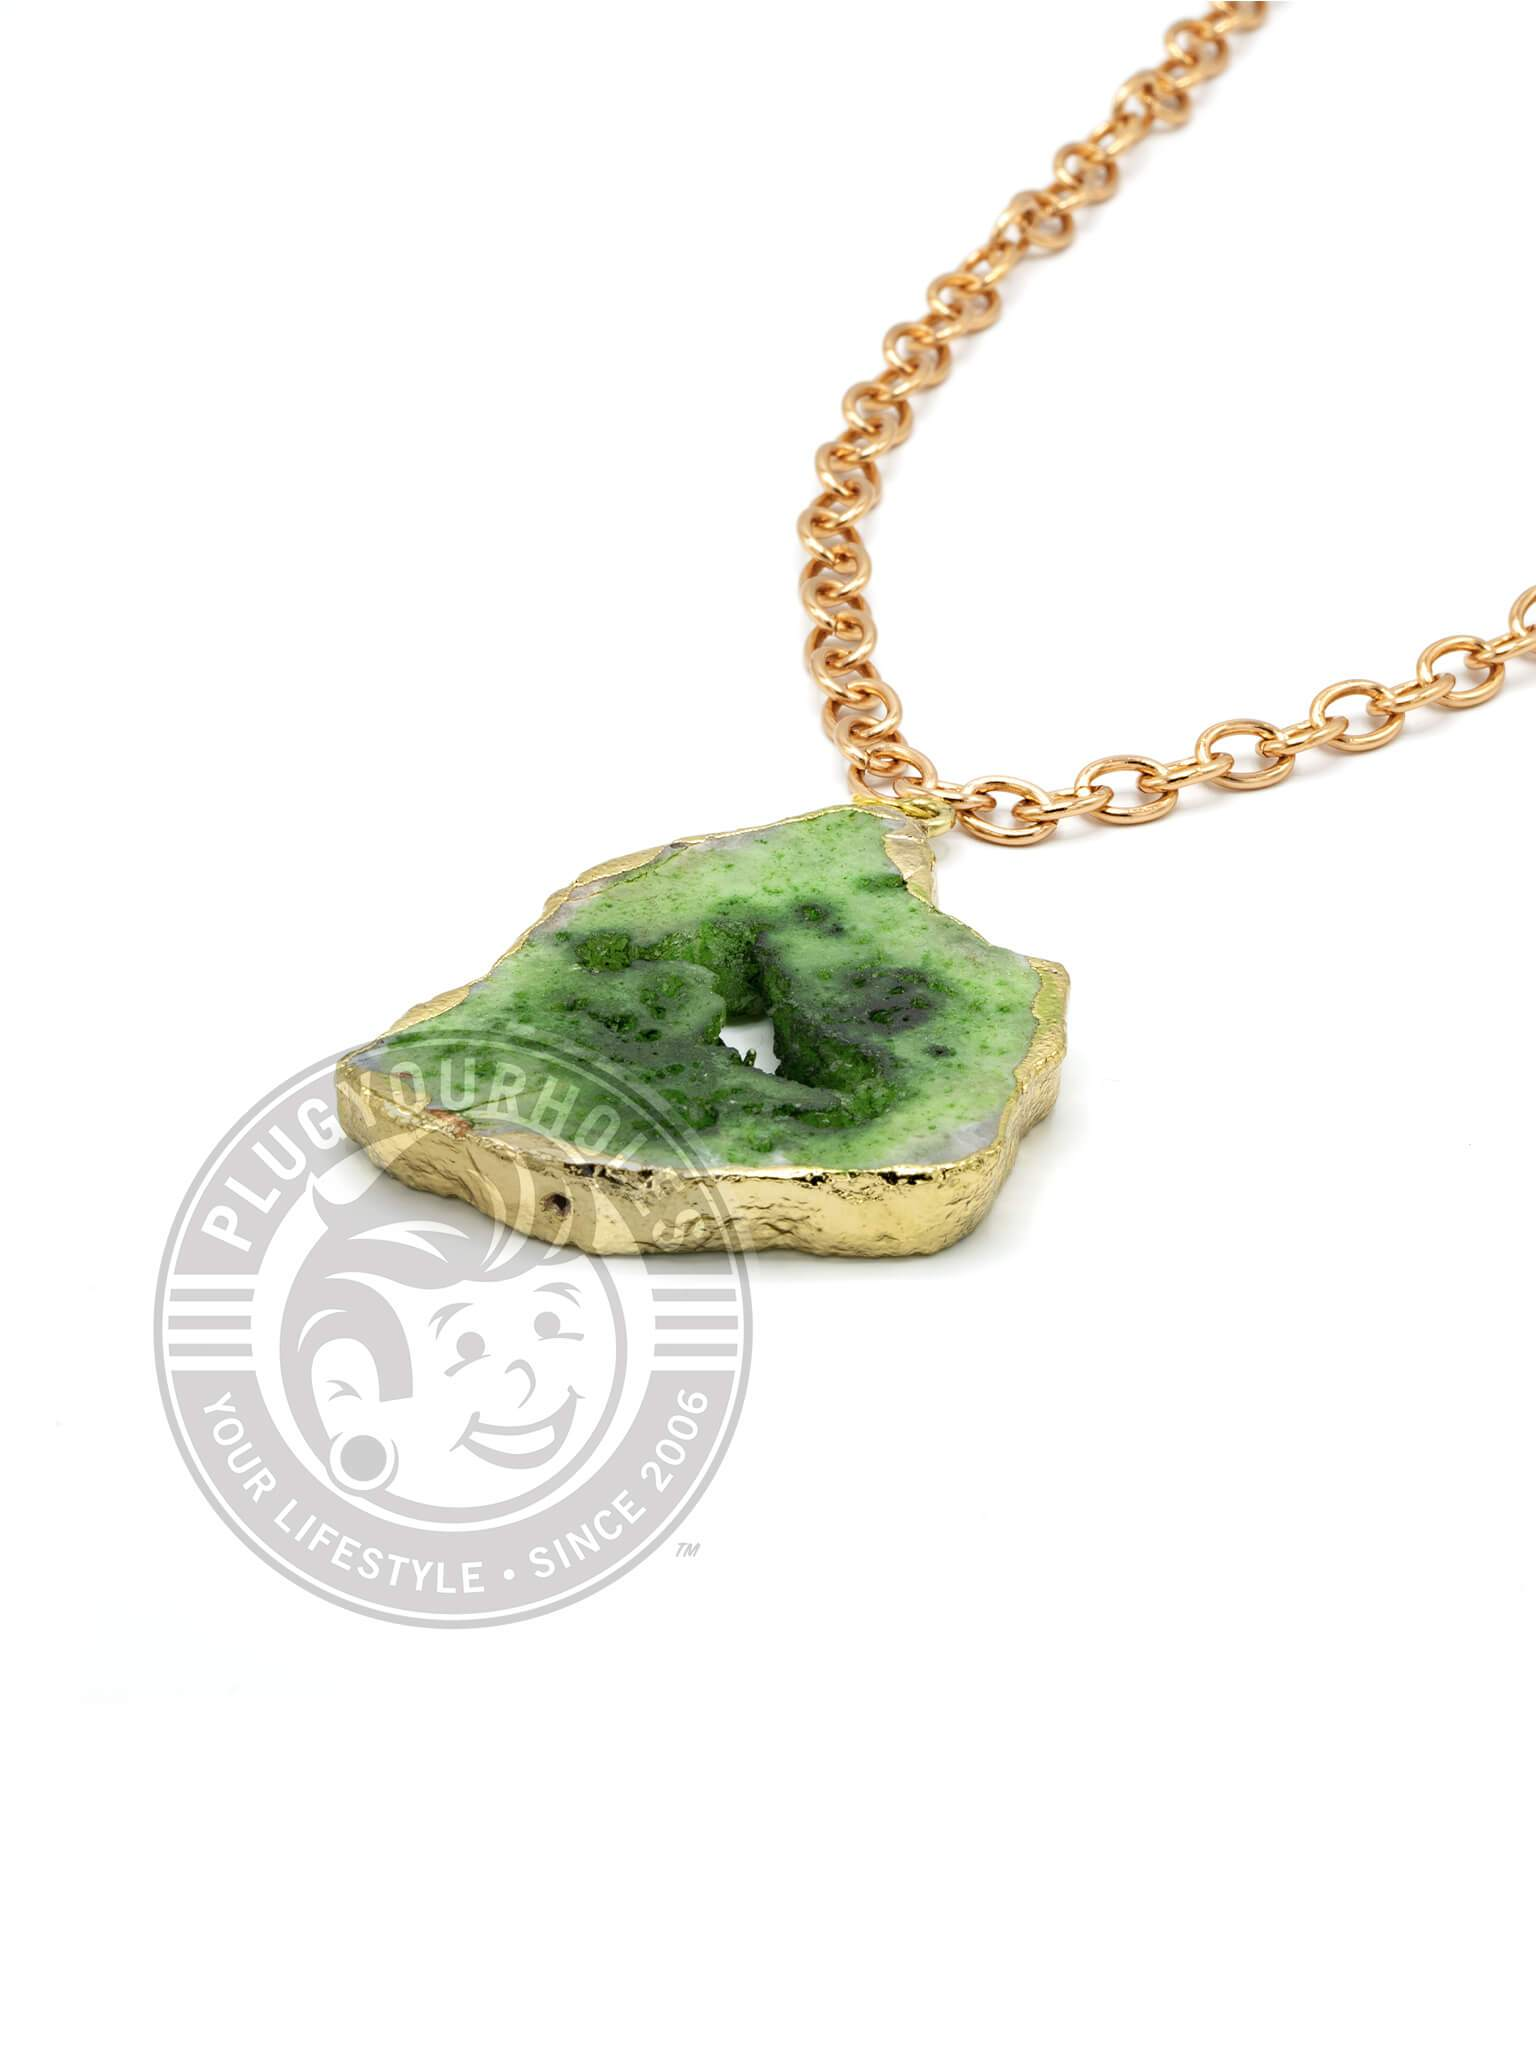 Emerald Green Crystalized Geode Slice Necklace